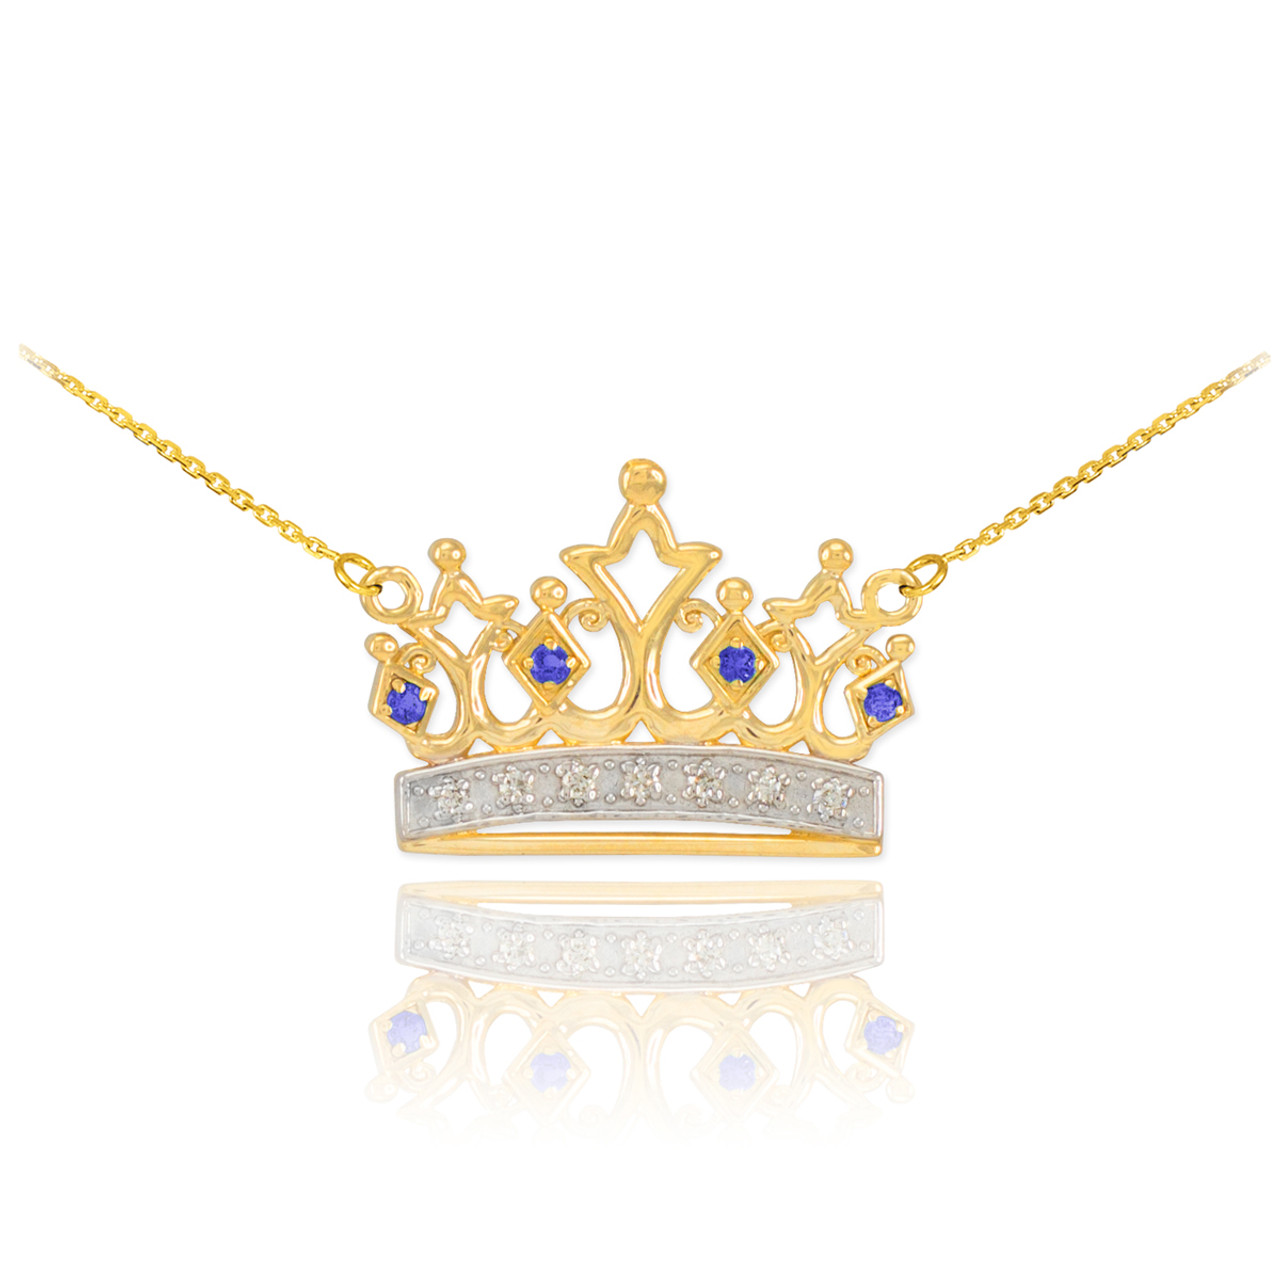 gold rhinestones chain pendant necklaces nickel arrival cz box color free luxury and products new queen fashion silver necklace velvet crown elegant